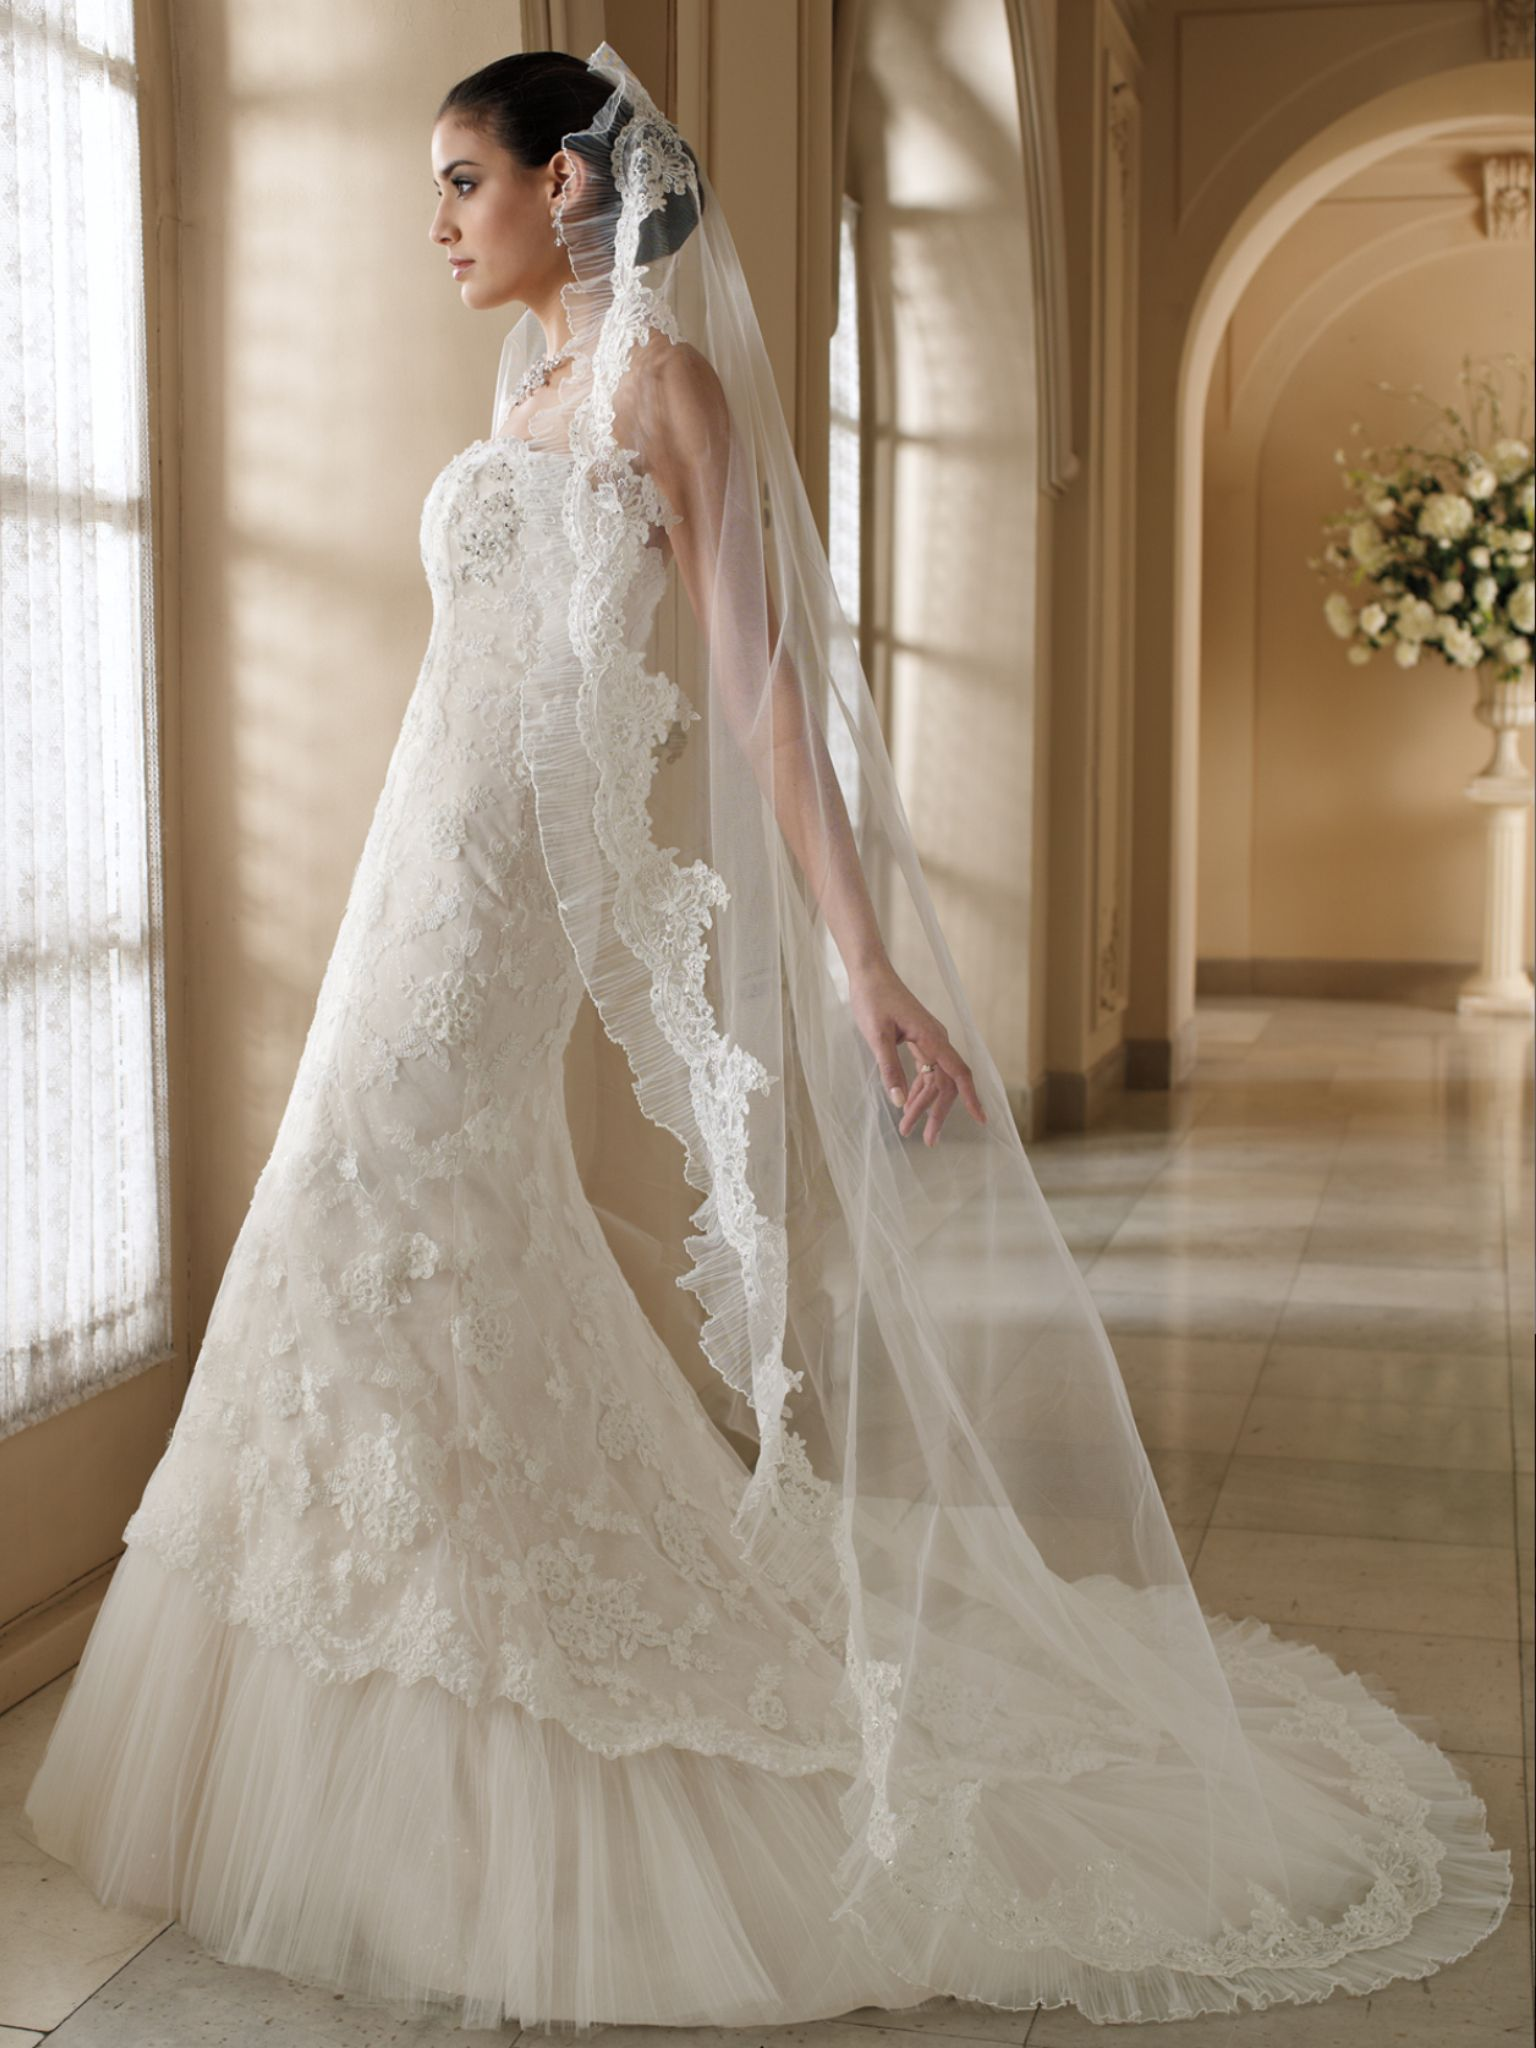 Spanish Style Wedding Dress Wedding 1 Wedding Dresses Wedding